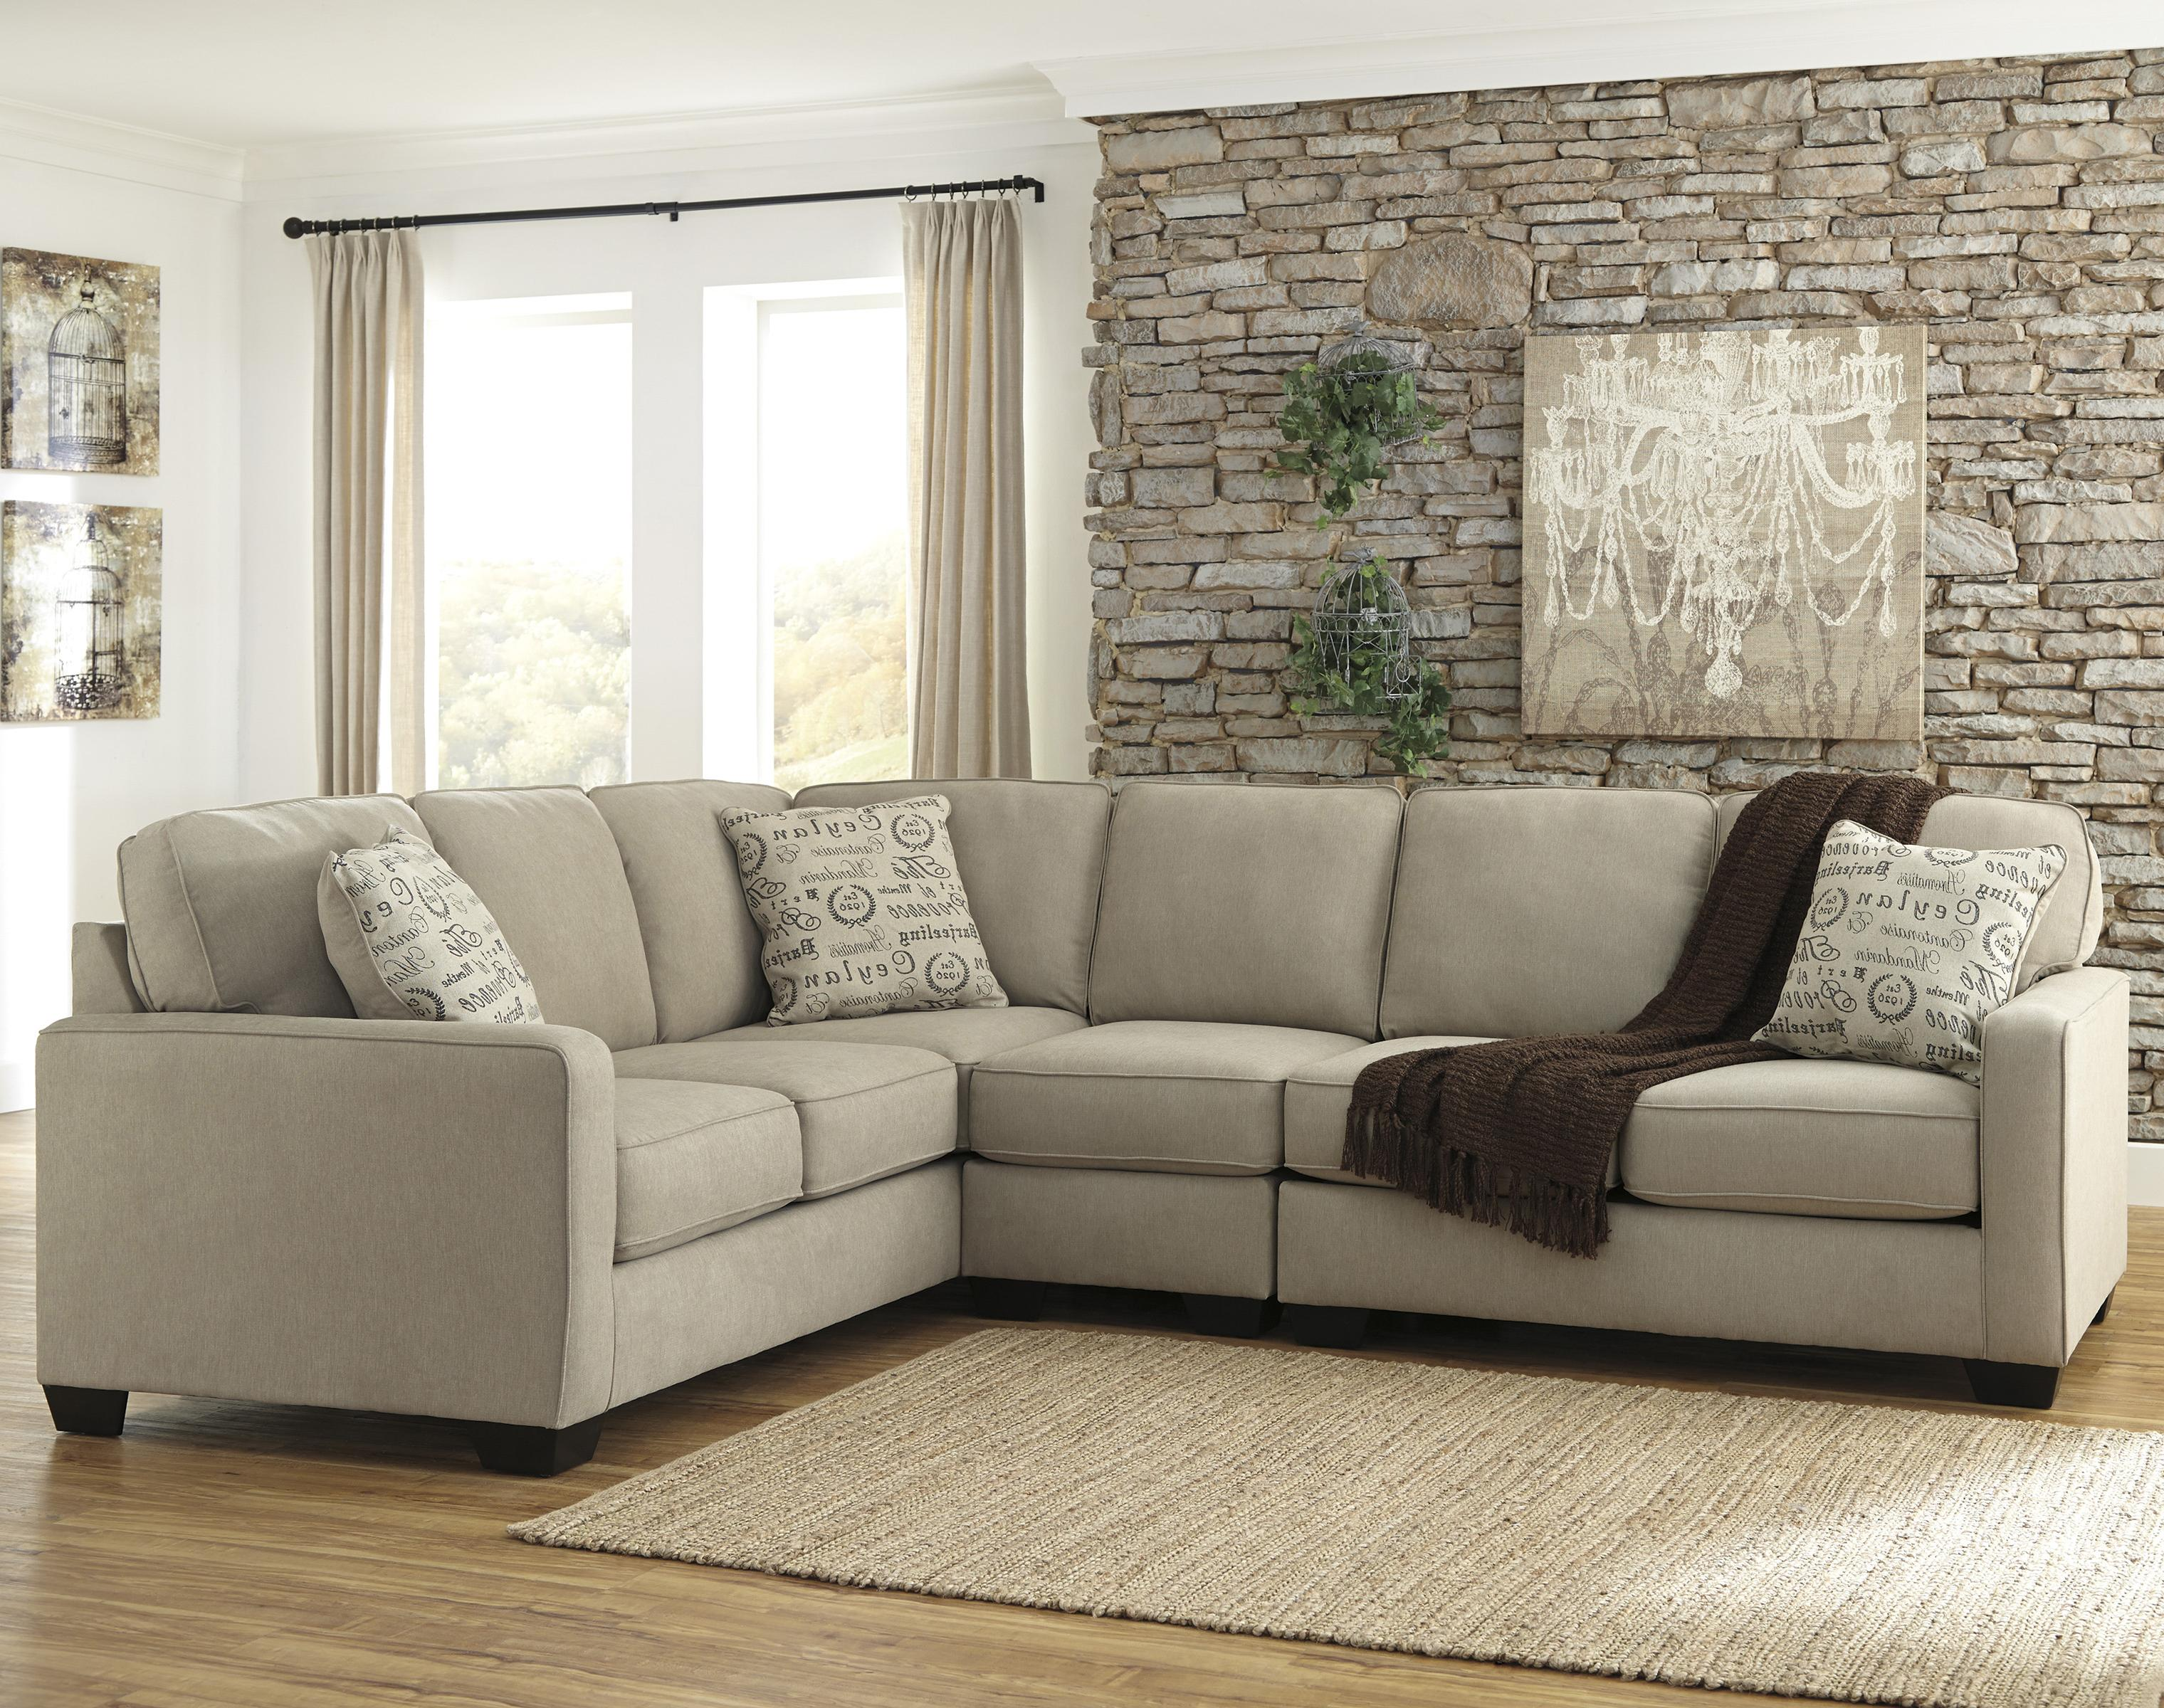 Alenya - Quartz 3-Piece Sectional with Right Loveseat by Signature Design by Ashley at Standard Furniture